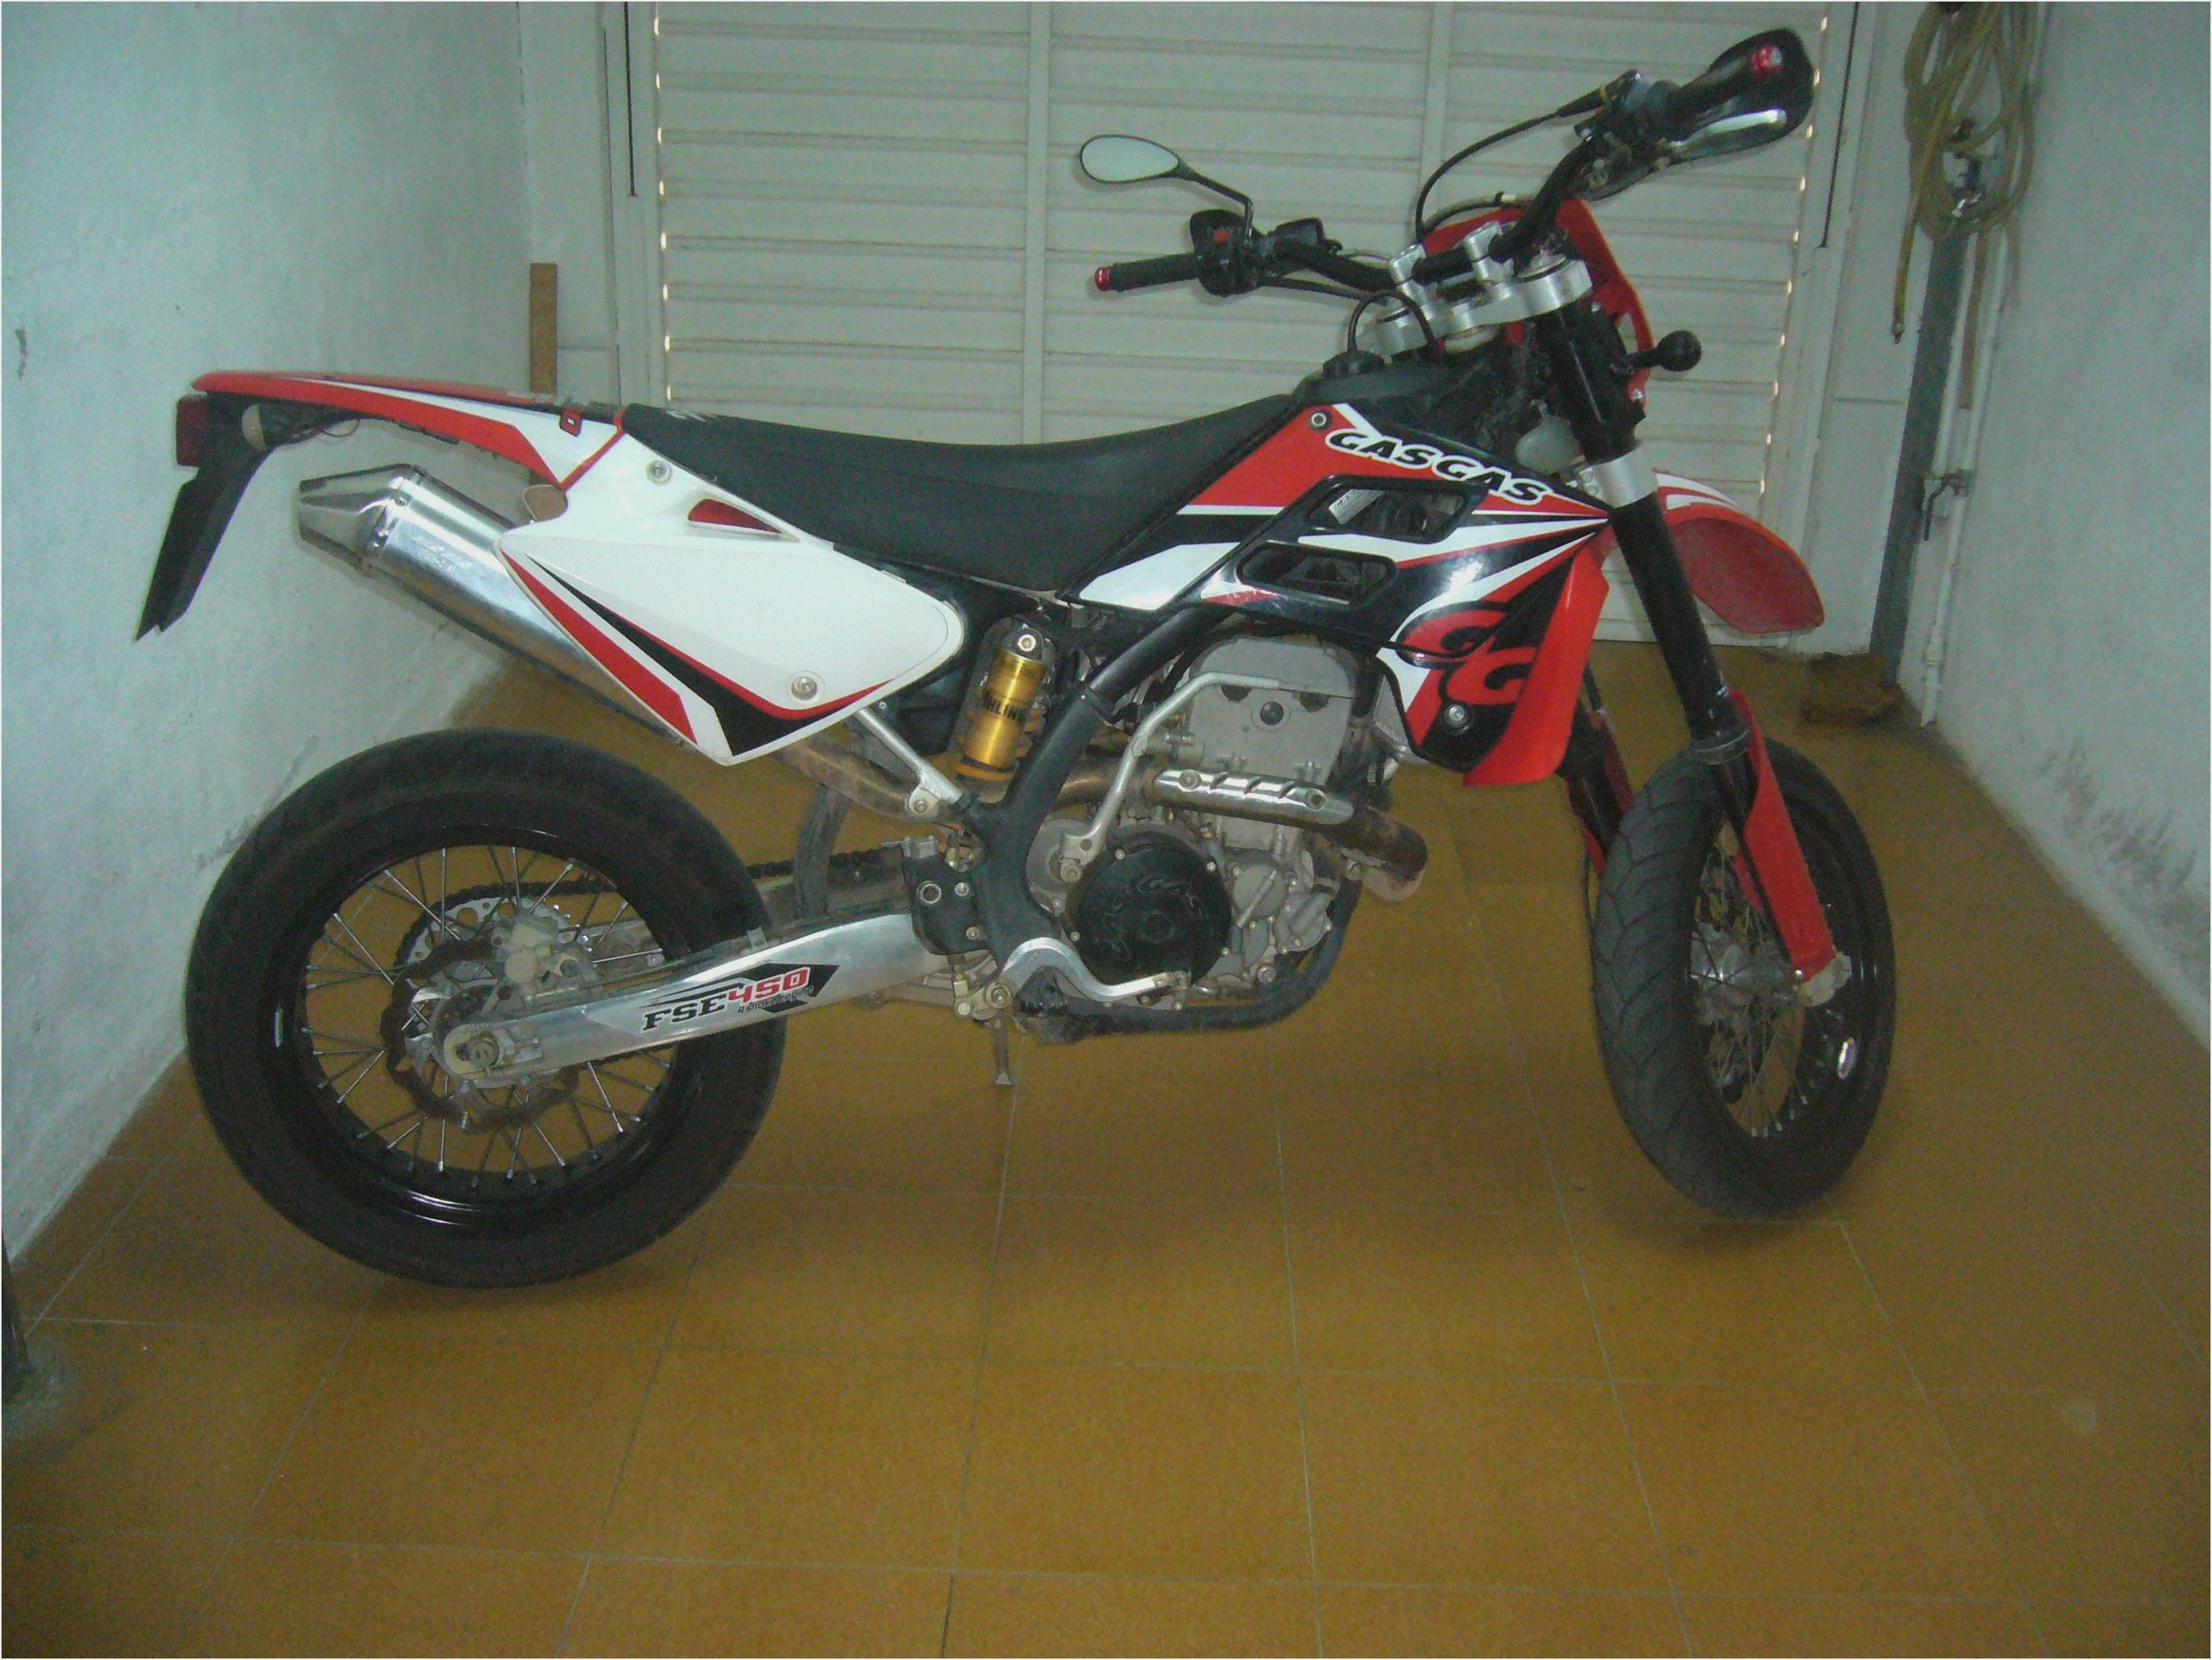 GAS GAS SM 450 images #95854